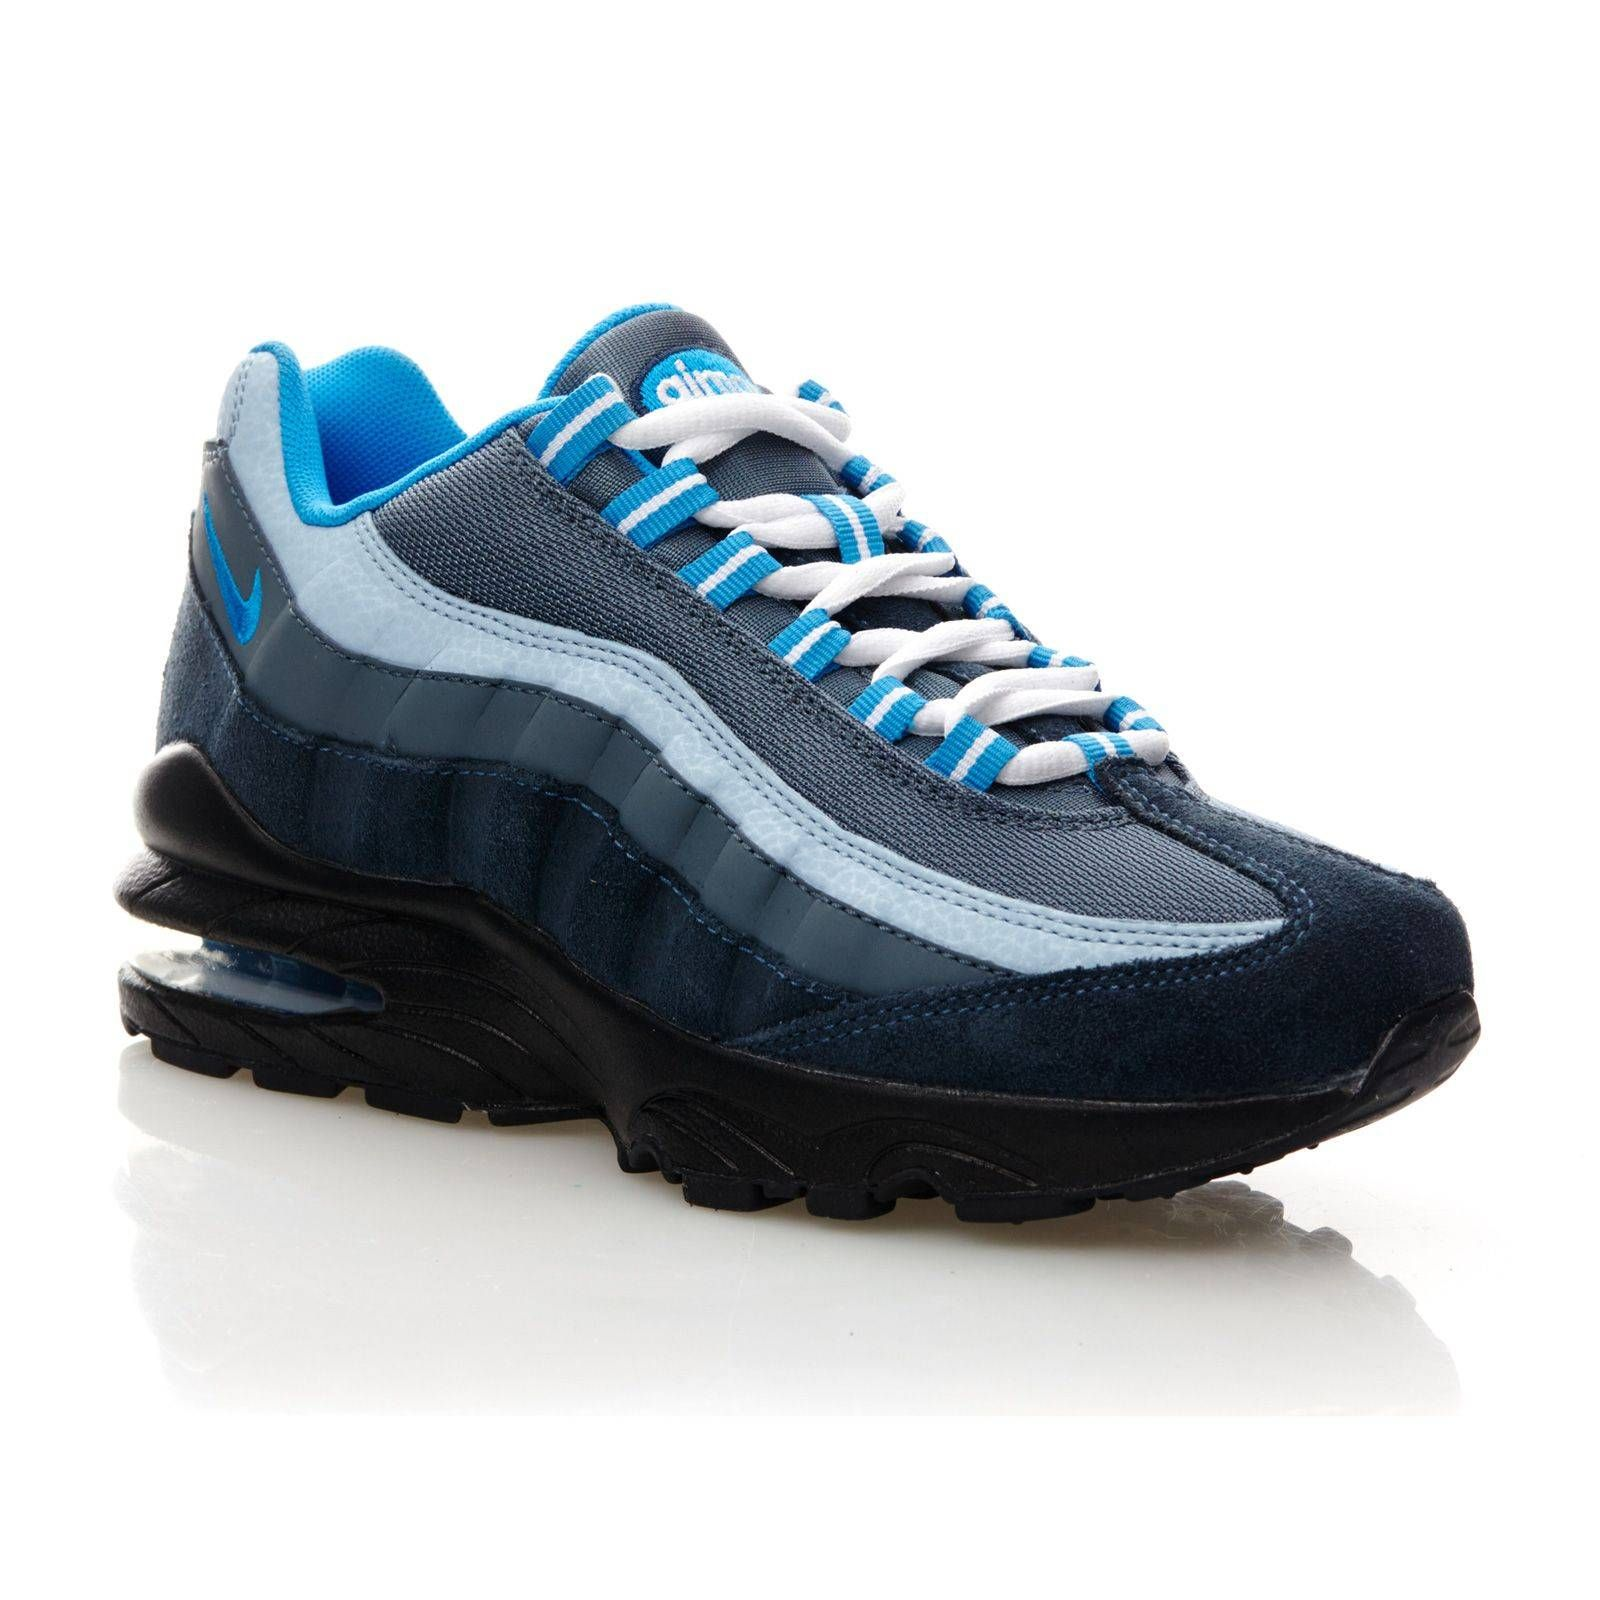 big sale 80591 182b4 ... coupon code air max 95 baskets en cuir mélangé bleu nike ref 2079359  brandalley 45fc3 3fc4a